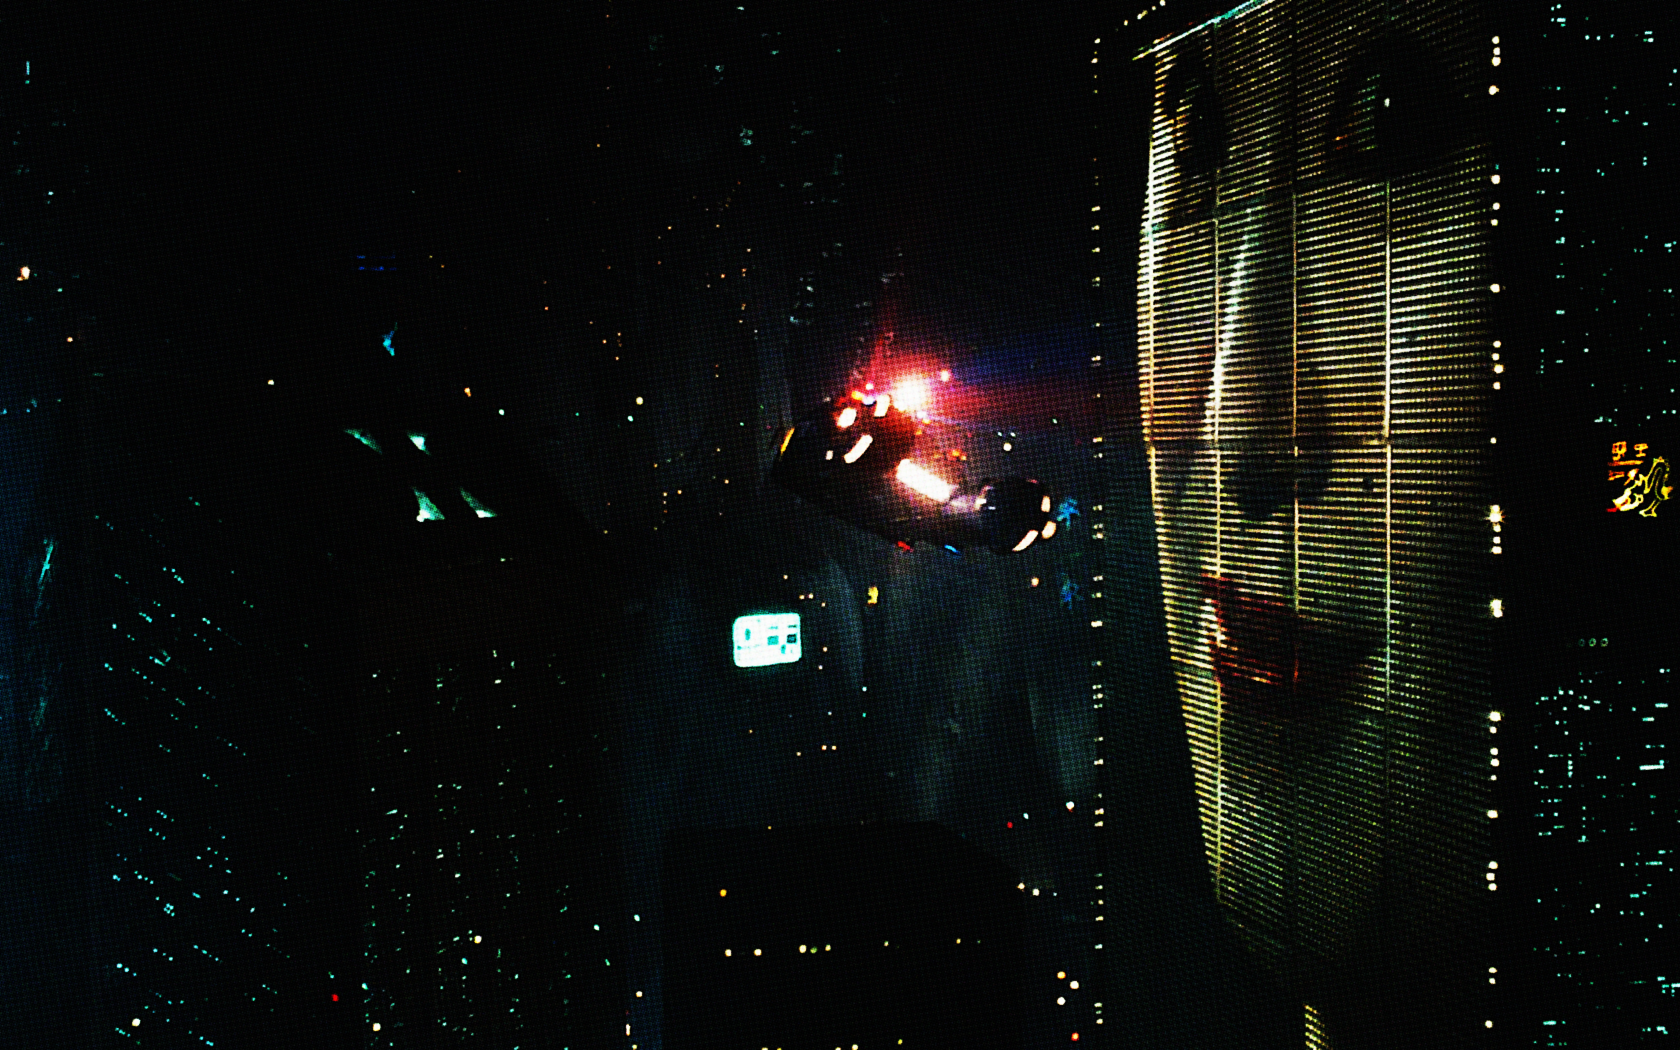 Blade Runner Wallpaper 1680x1050 Blade Runner 1680x1050